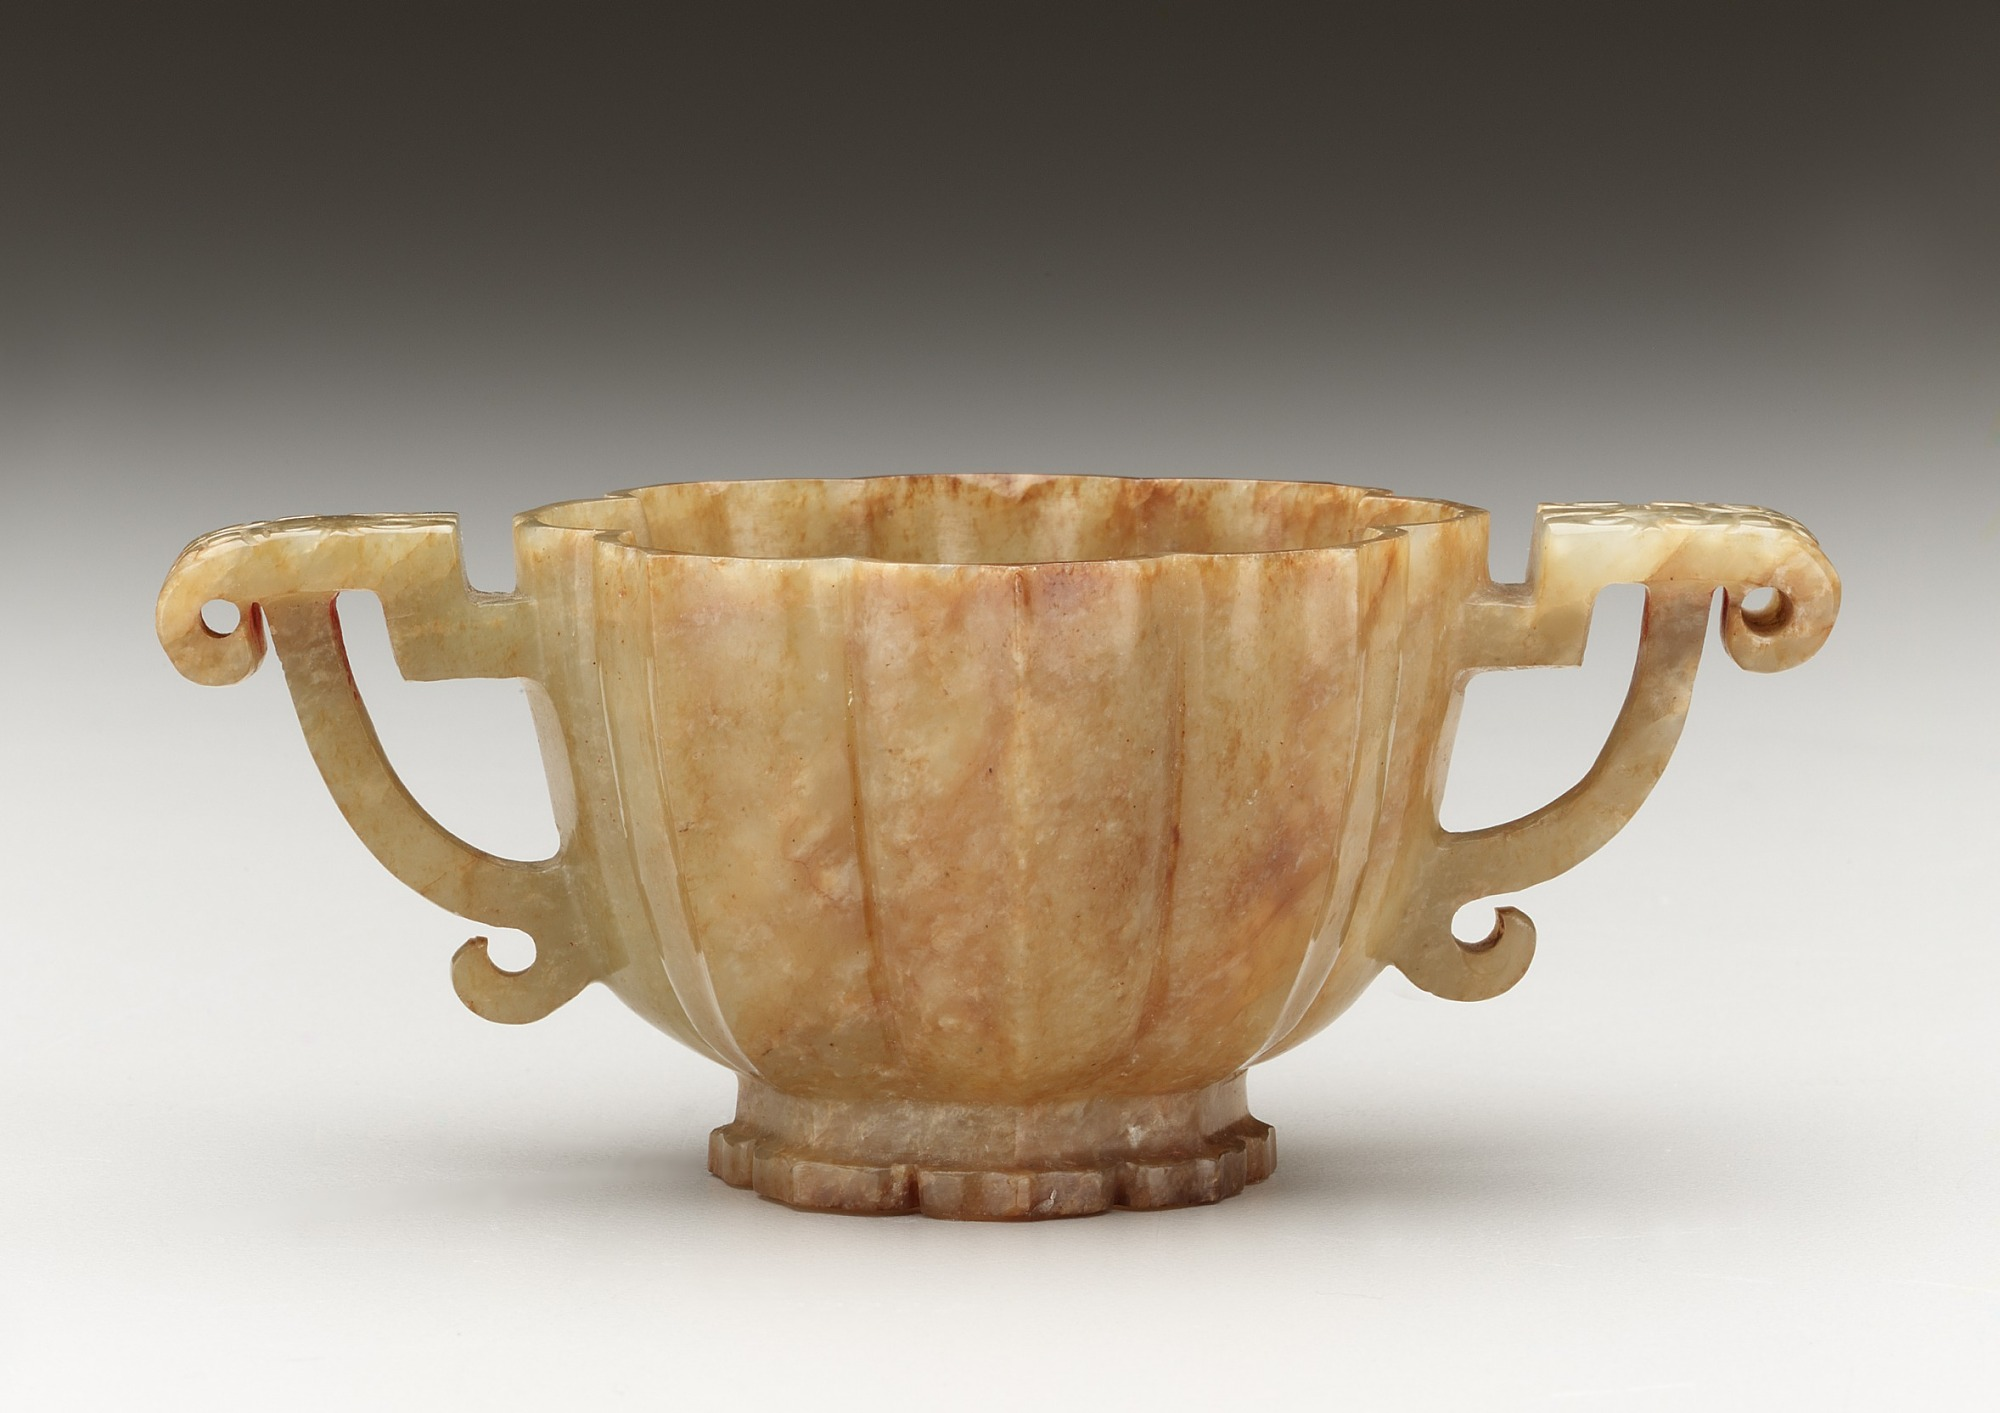 Handled cup